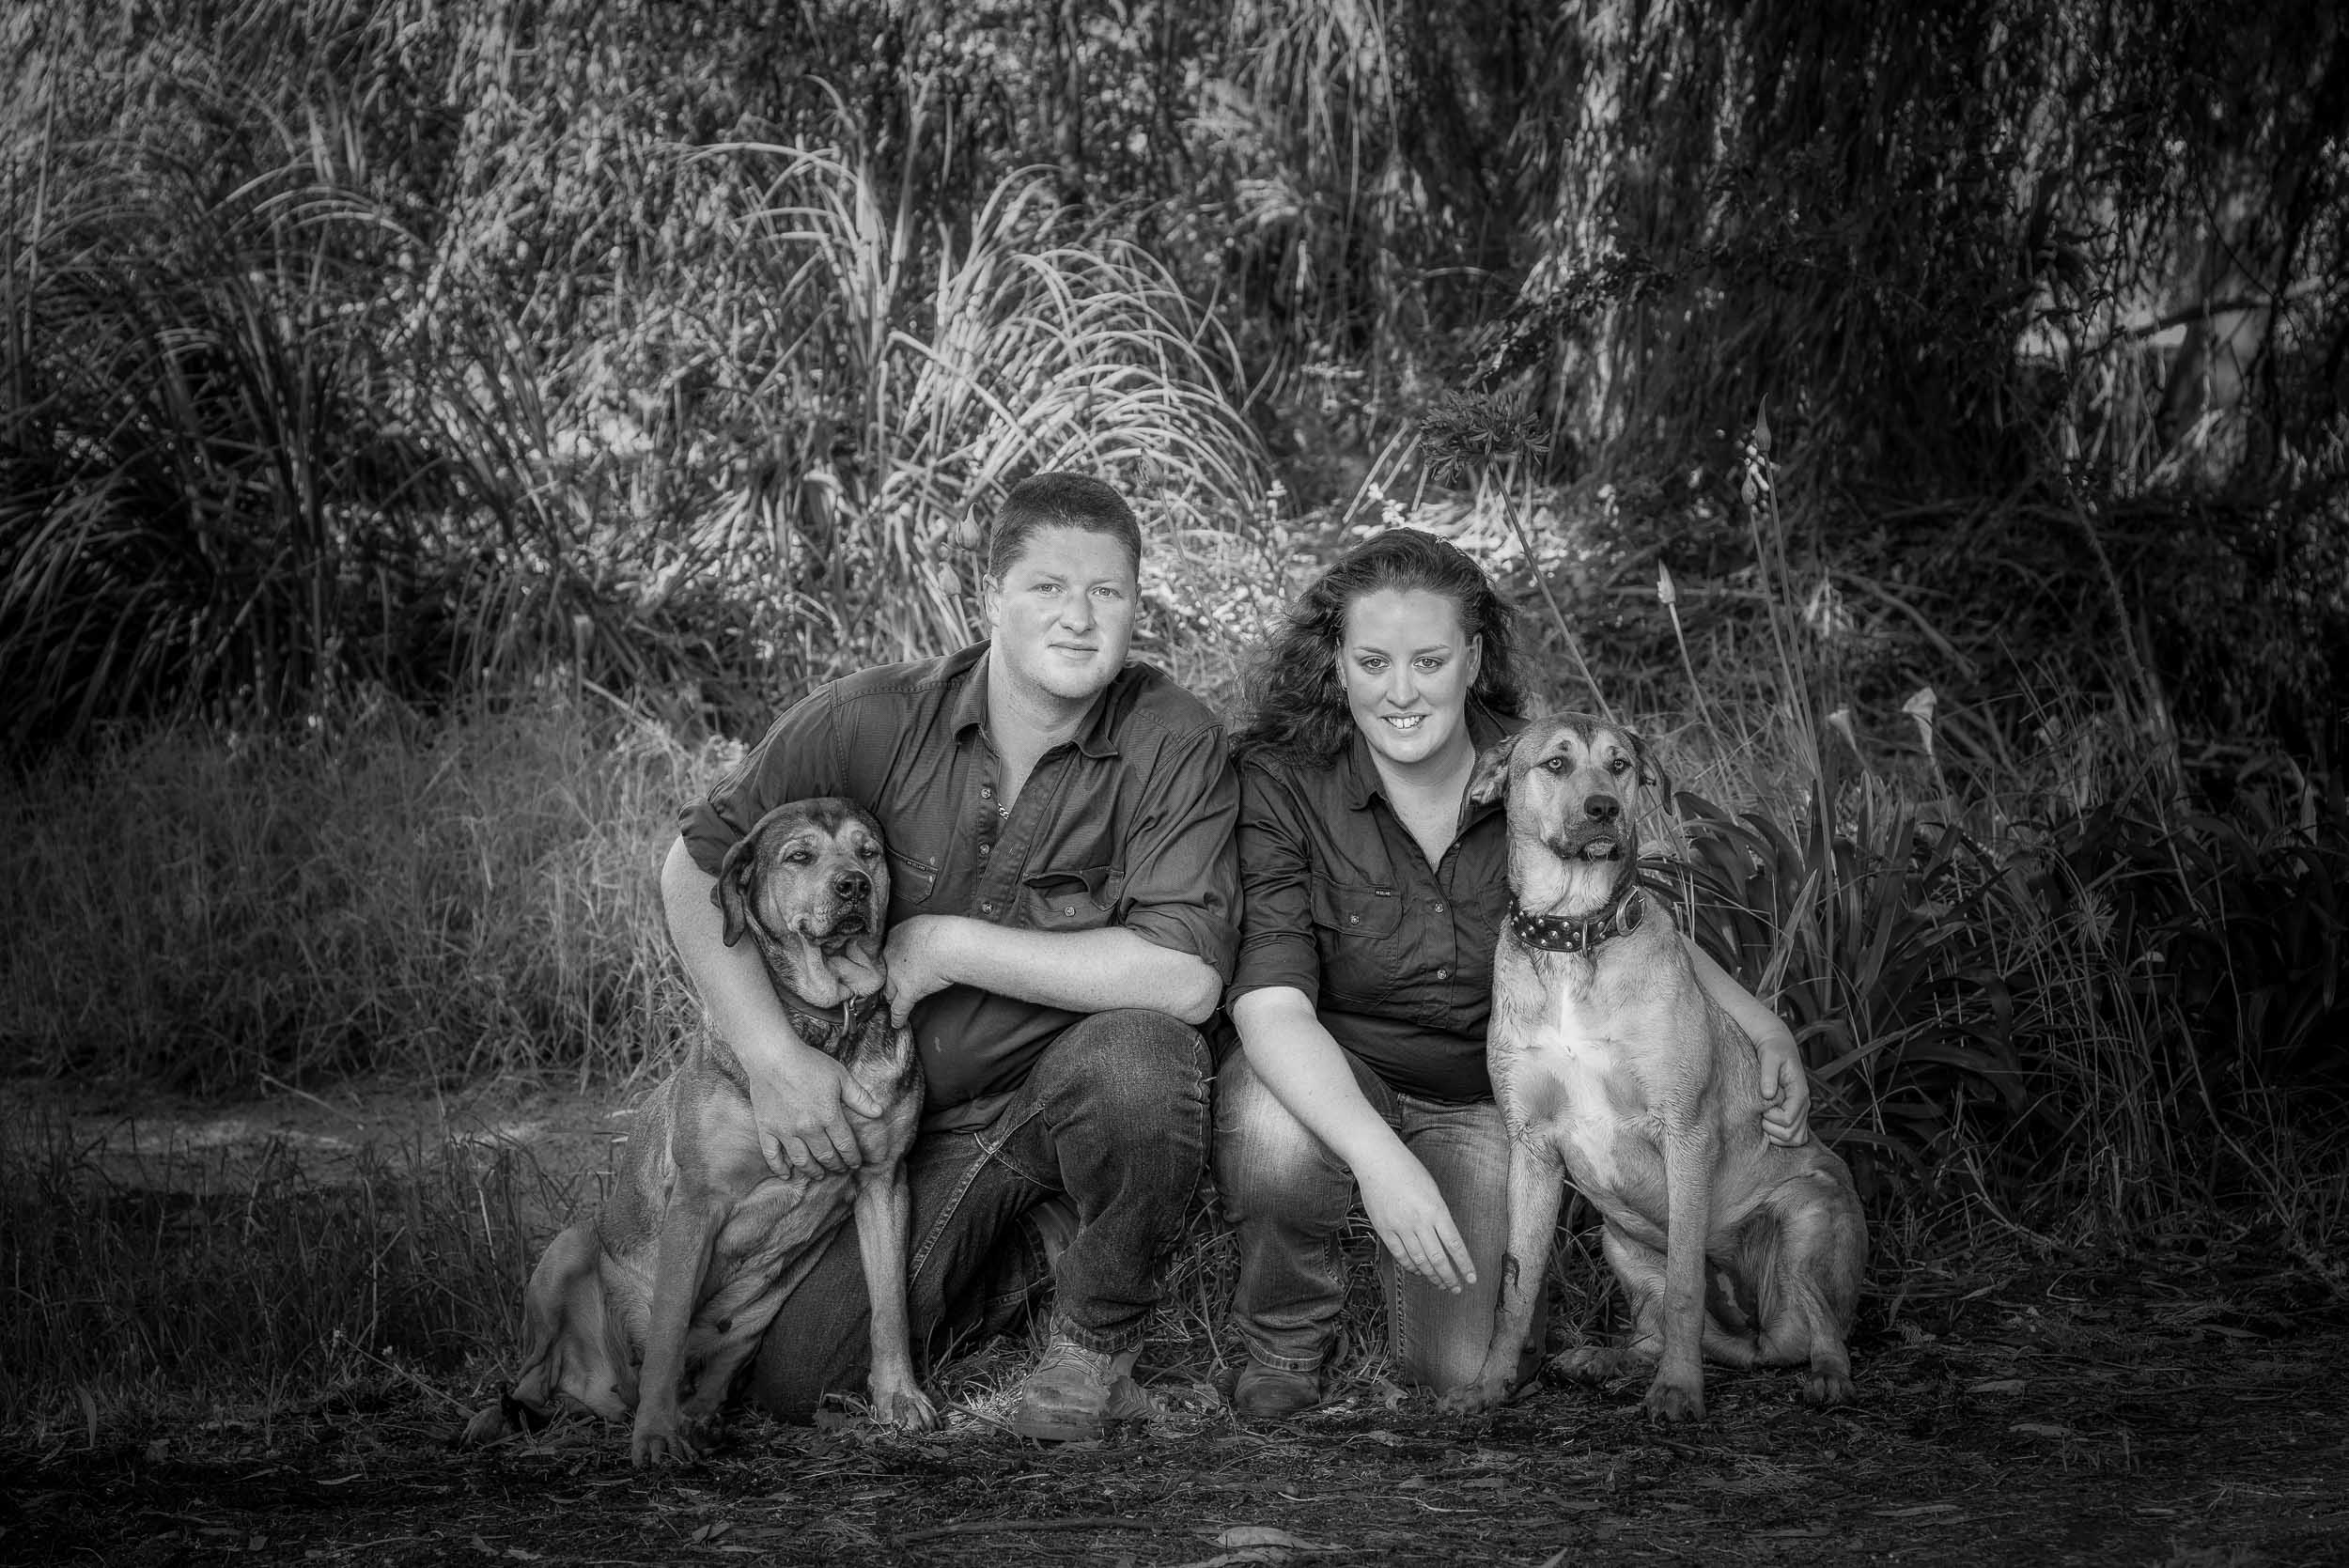 Couple with dogs, Hamilton, Australia. This photo speaks to the relationship between the subjects photographed, human and canine alike.